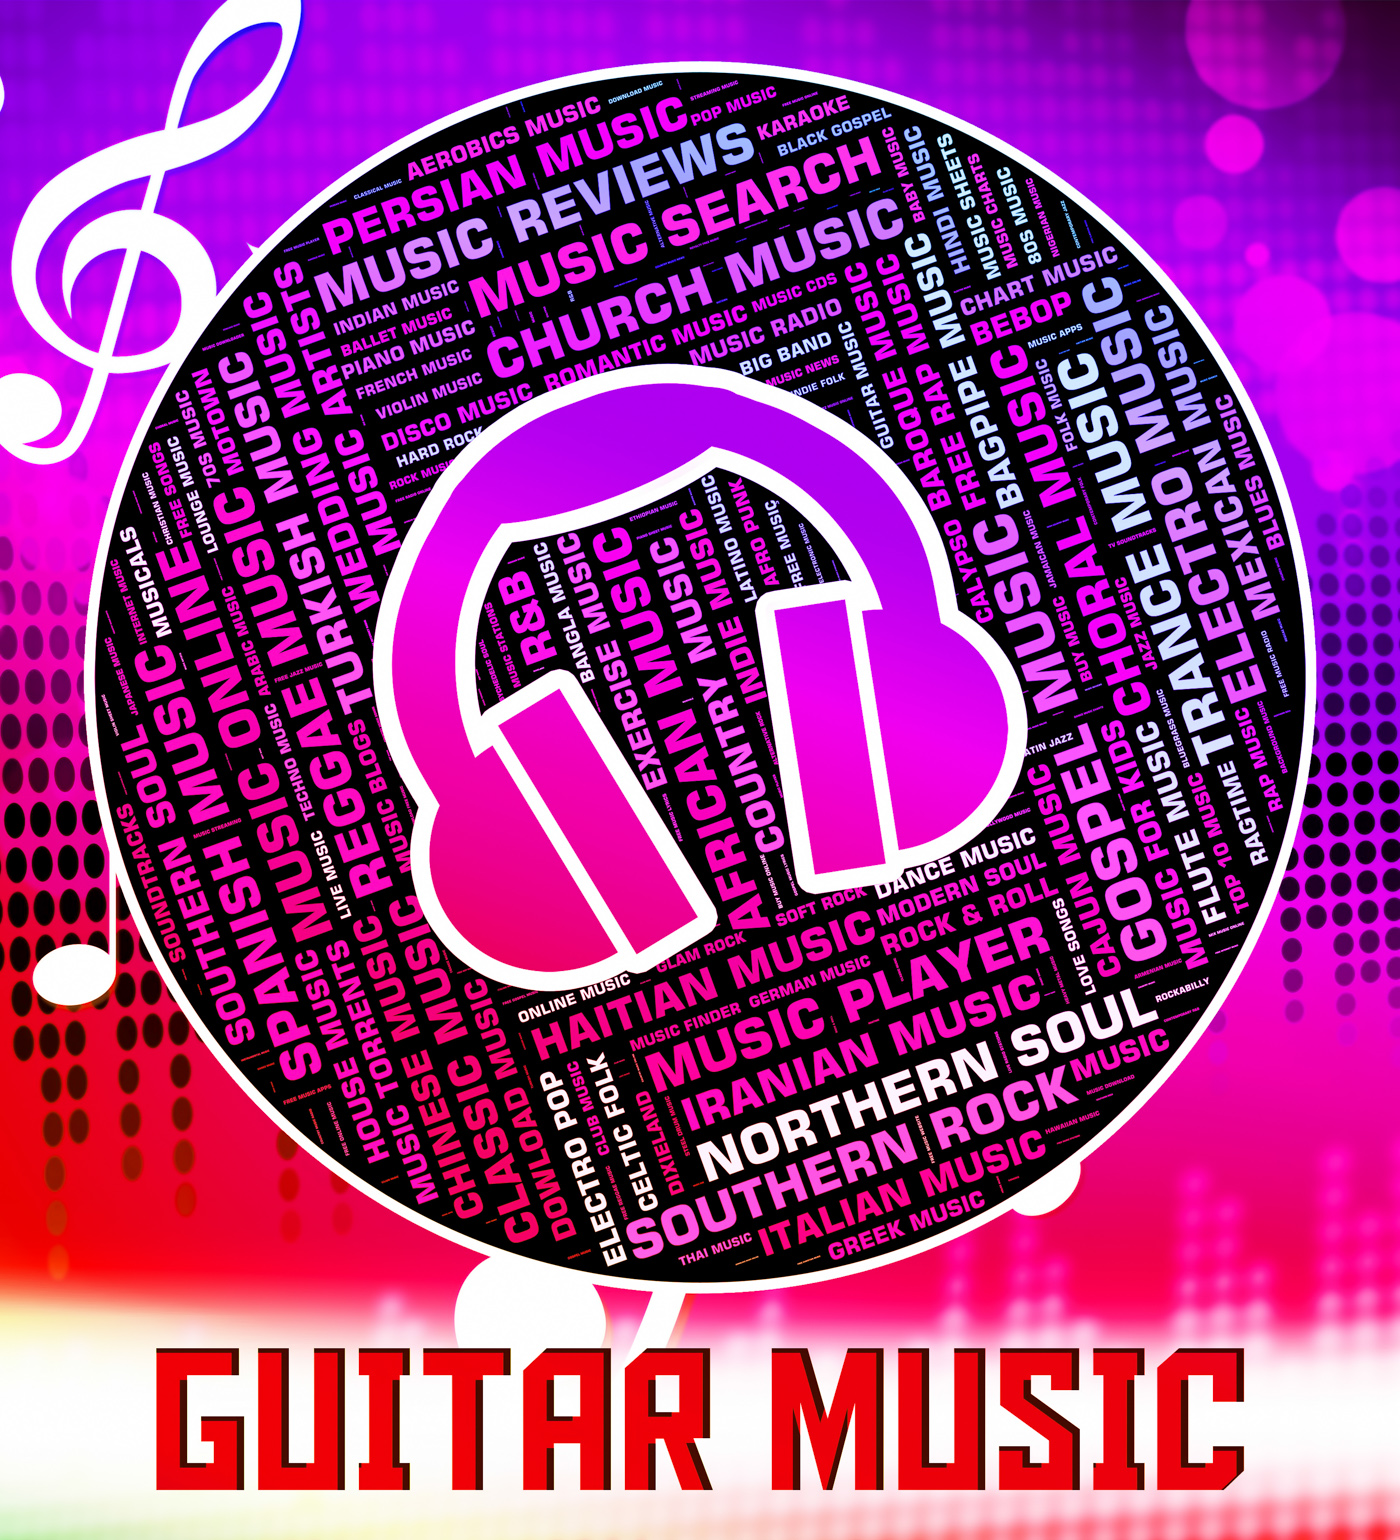 Guitar Music Indicates Sound Track And Audio, Acoustic, Play, Tune, Track, HQ Photo